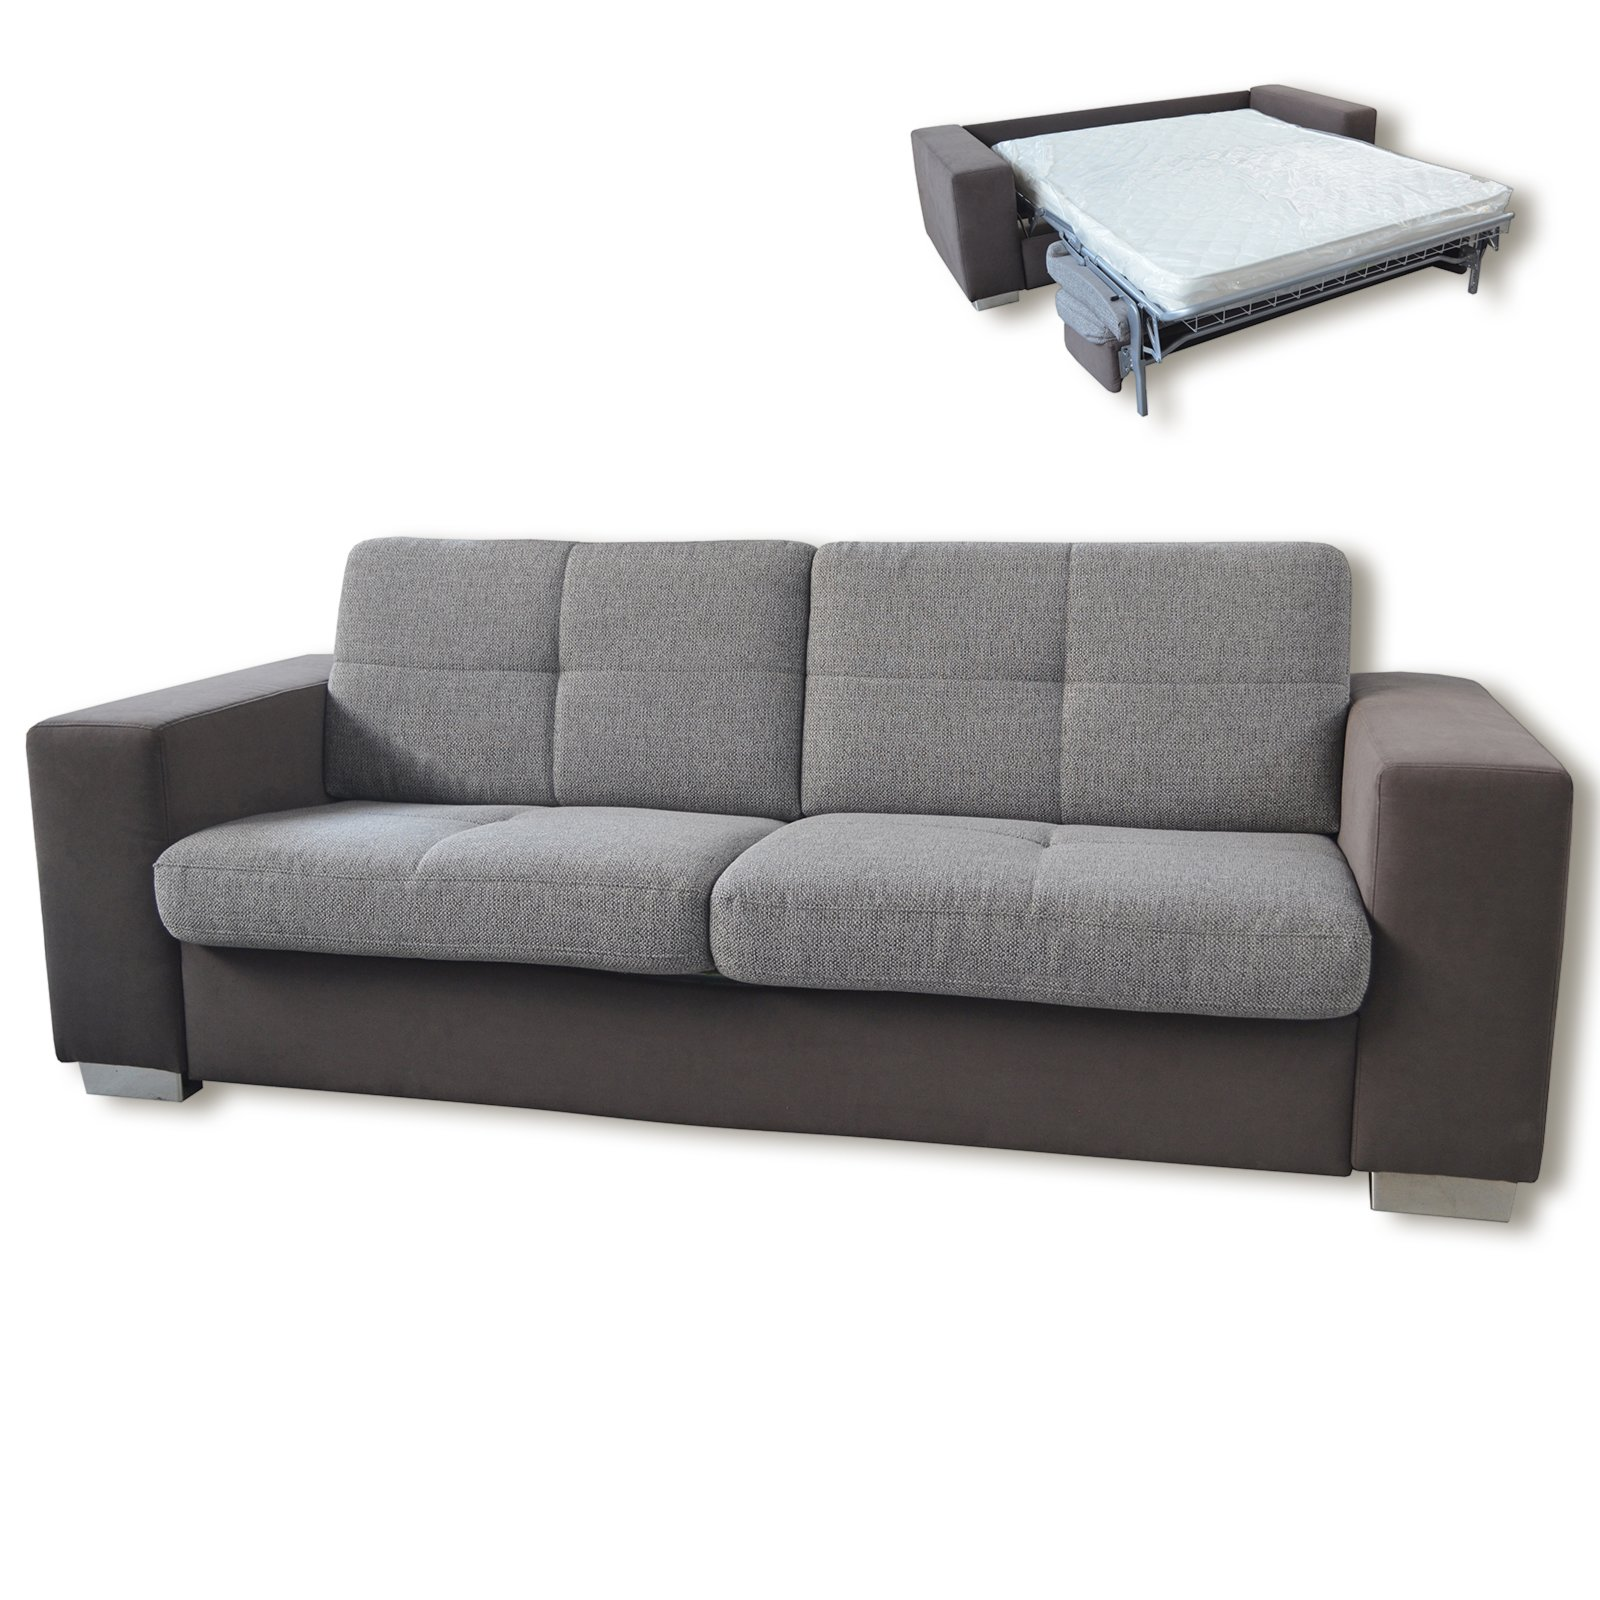 roller schlafsofa grau mit matratze ebay. Black Bedroom Furniture Sets. Home Design Ideas